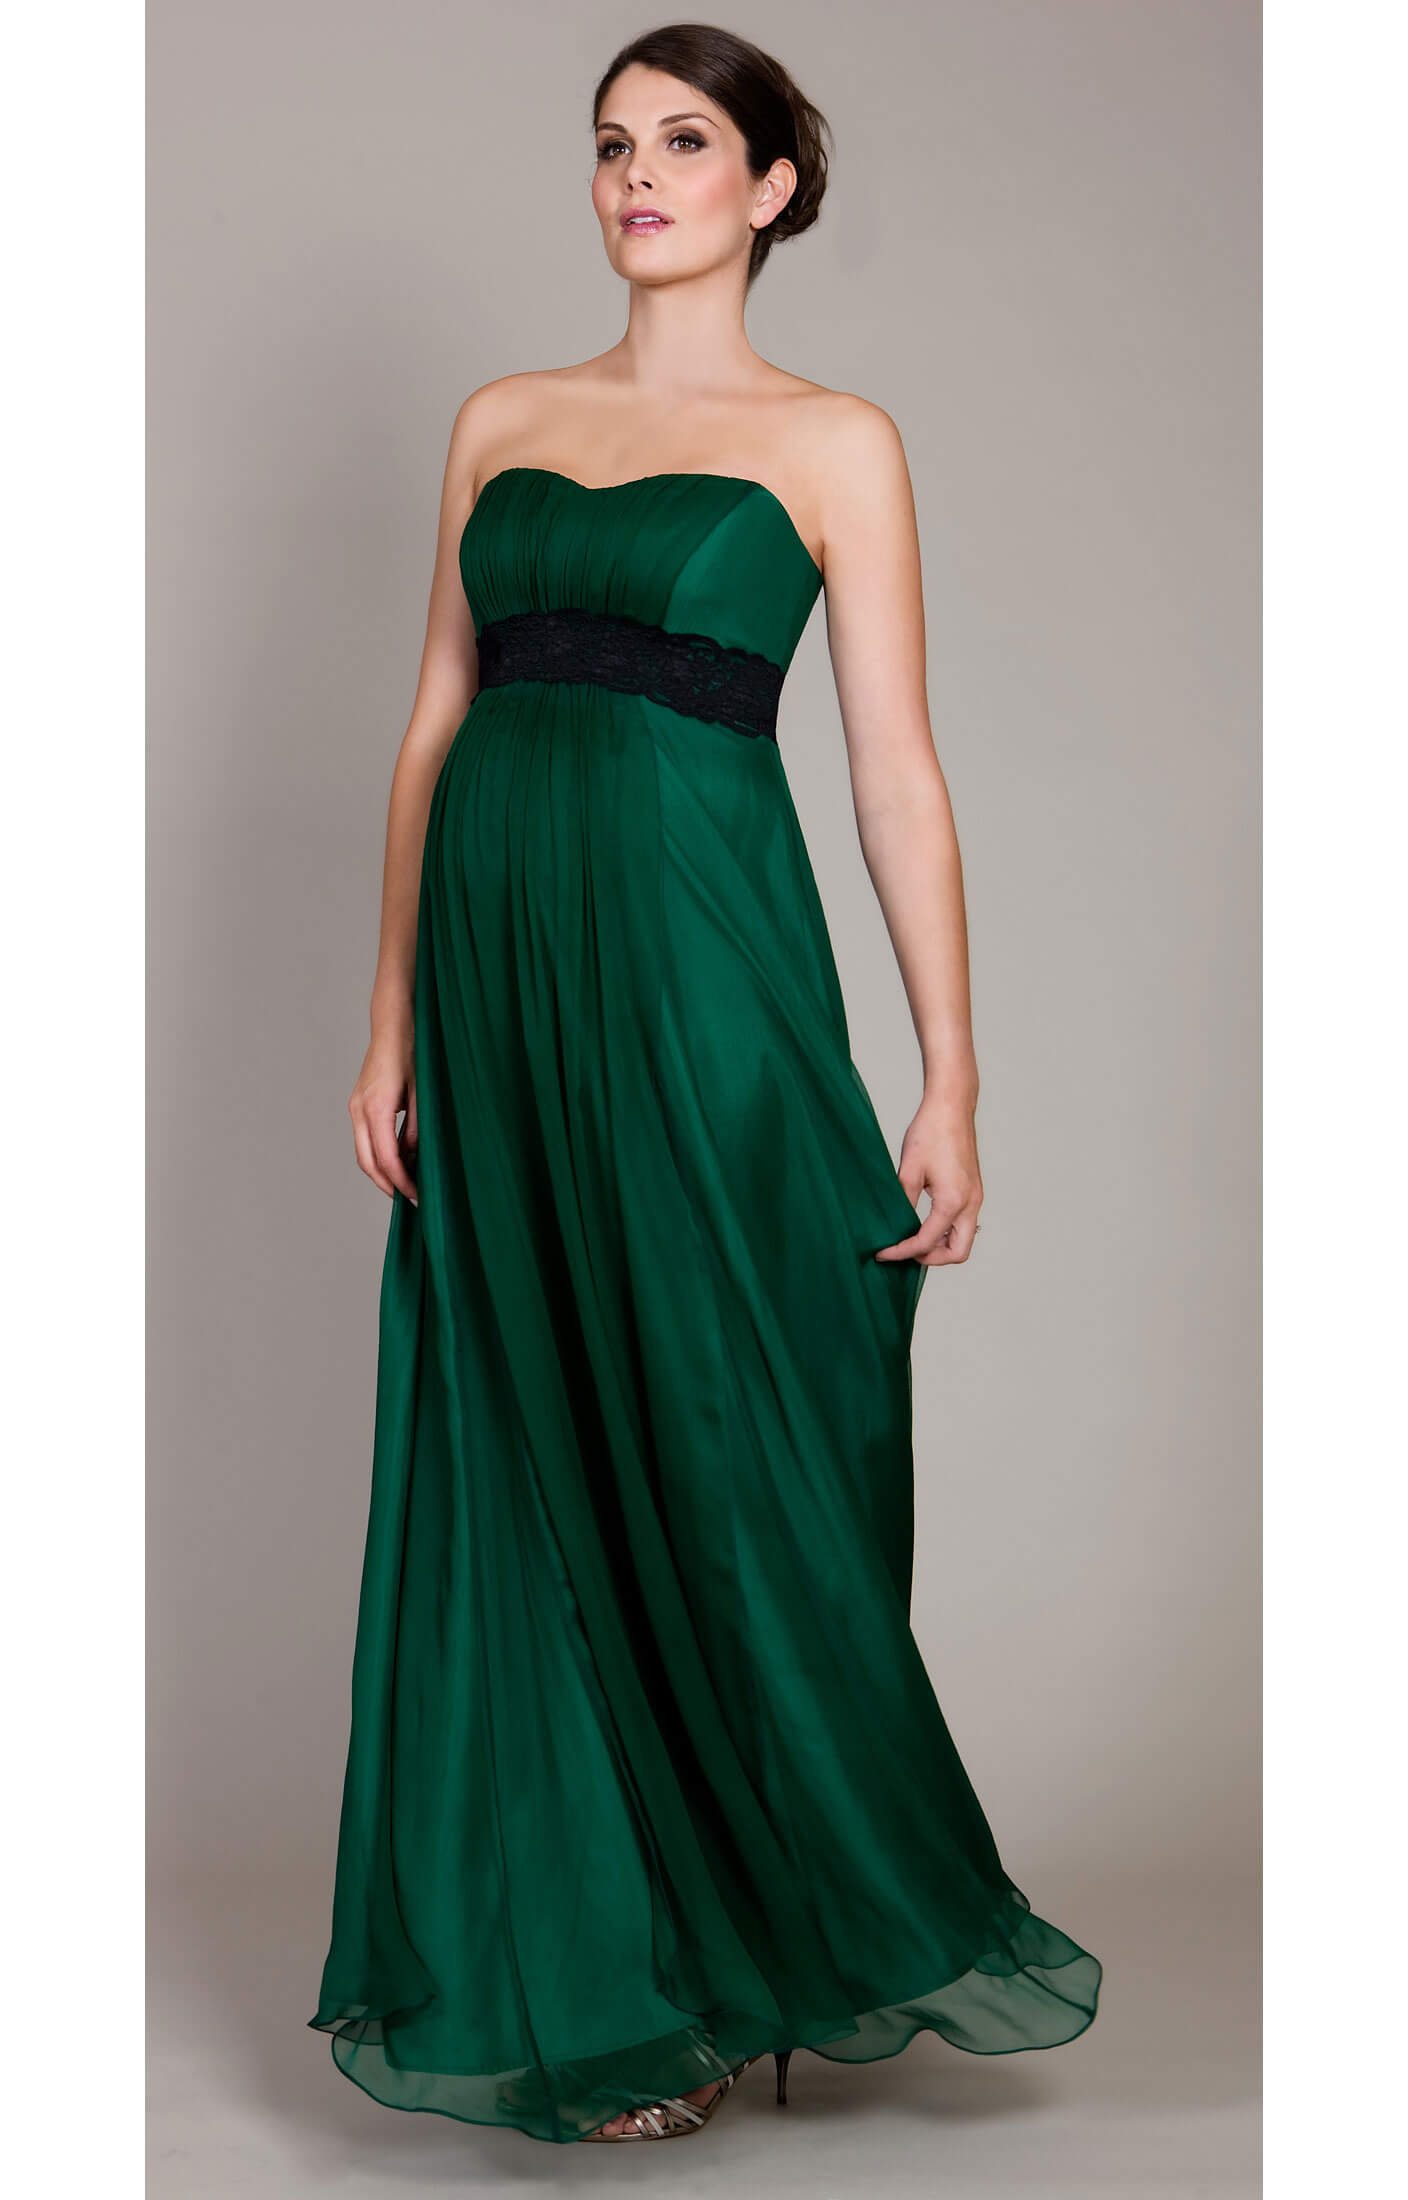 Emerald Maternity Gown with Black Lace Sash - Maternity Wedding ...